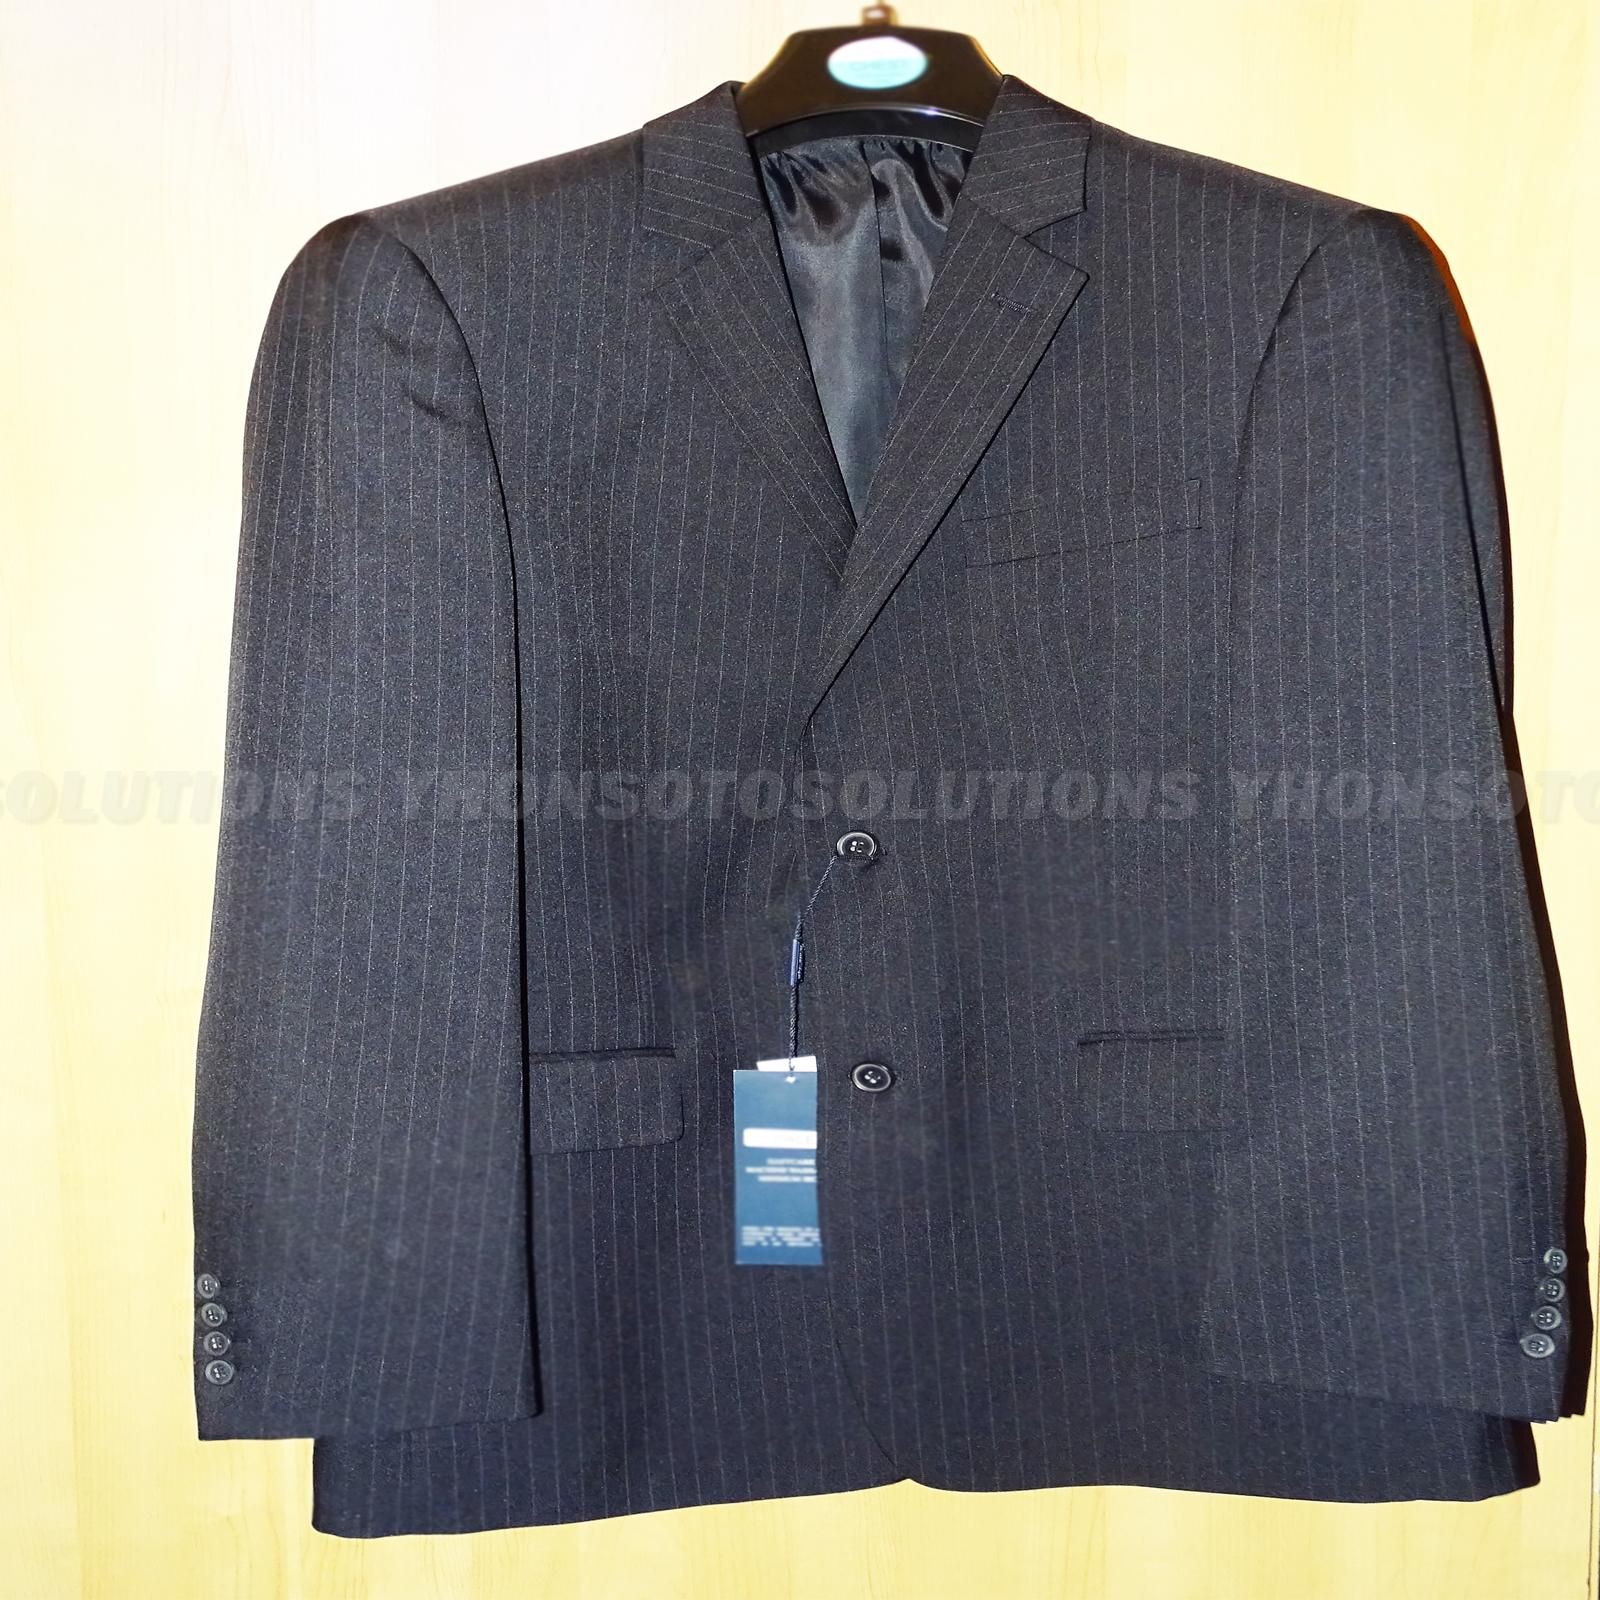 men's-casual-suit-business-jacket Taylor & Wright Suit Daniel Christian Suit